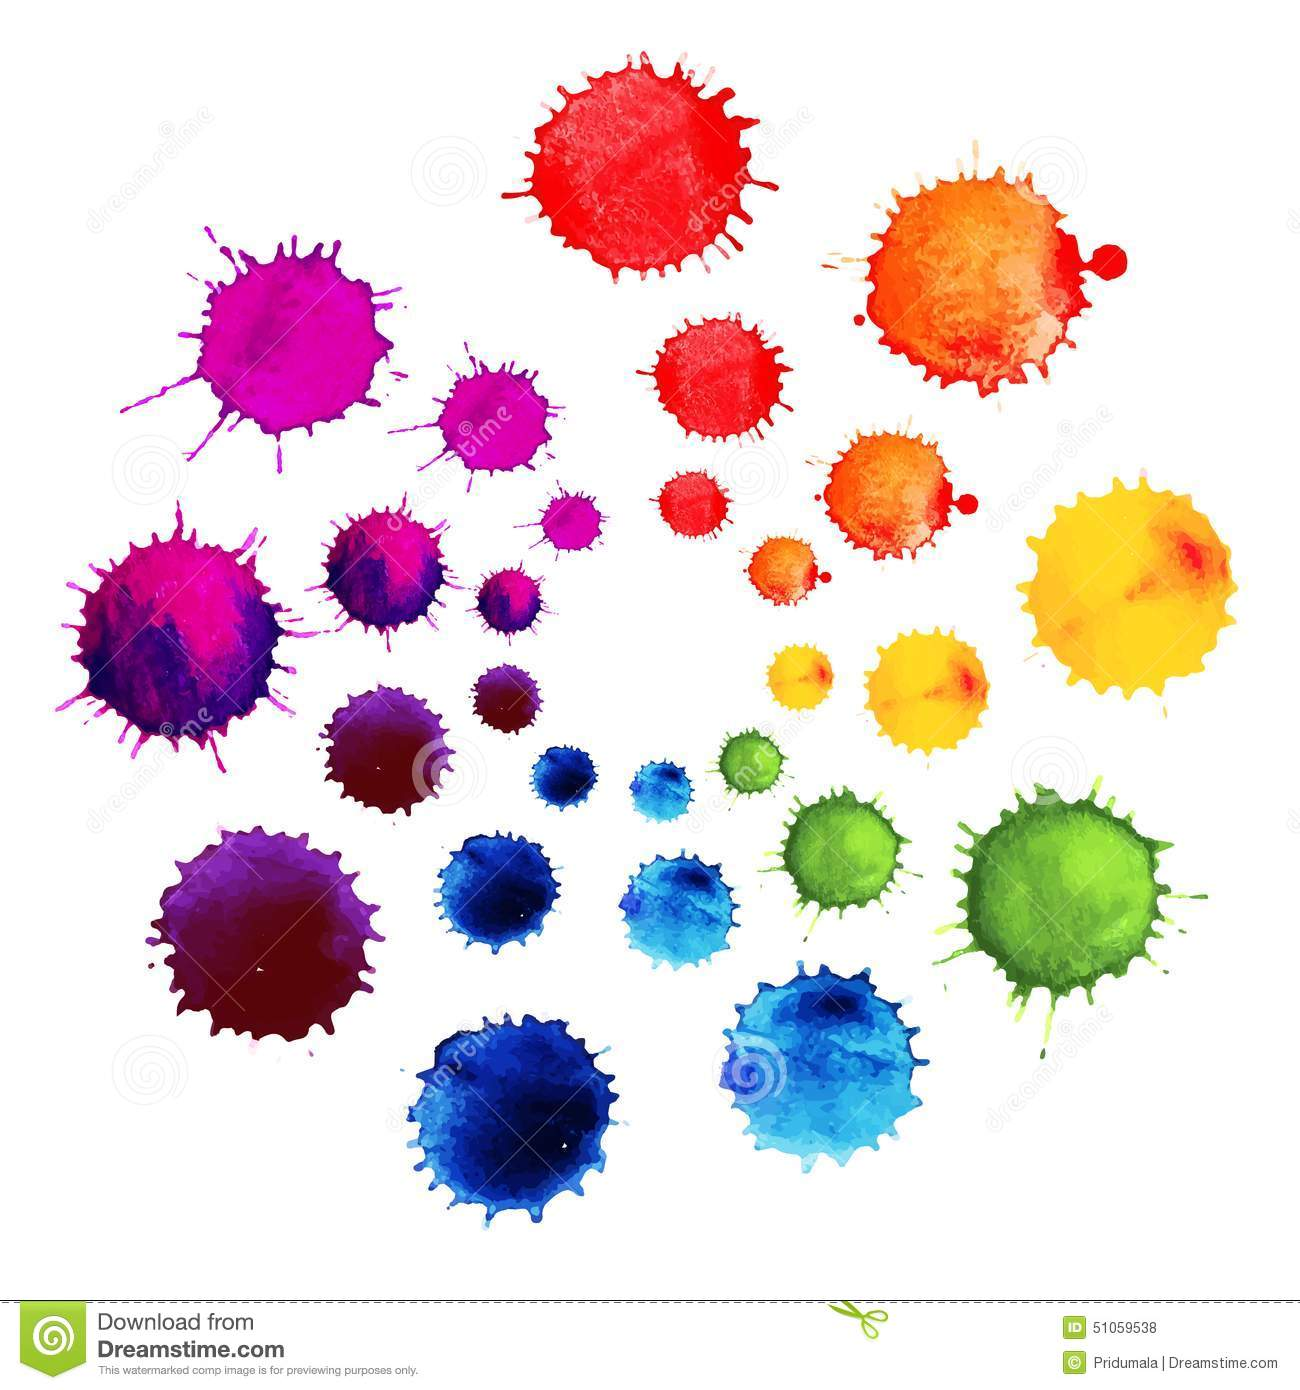 Download Abstract Flower Made Of Watercolor Blobs. Colorful Abstract Vector Ink Paint Splats. Color Wheel. Stock Vector - Illustration of paintbrush, icon: 51059538